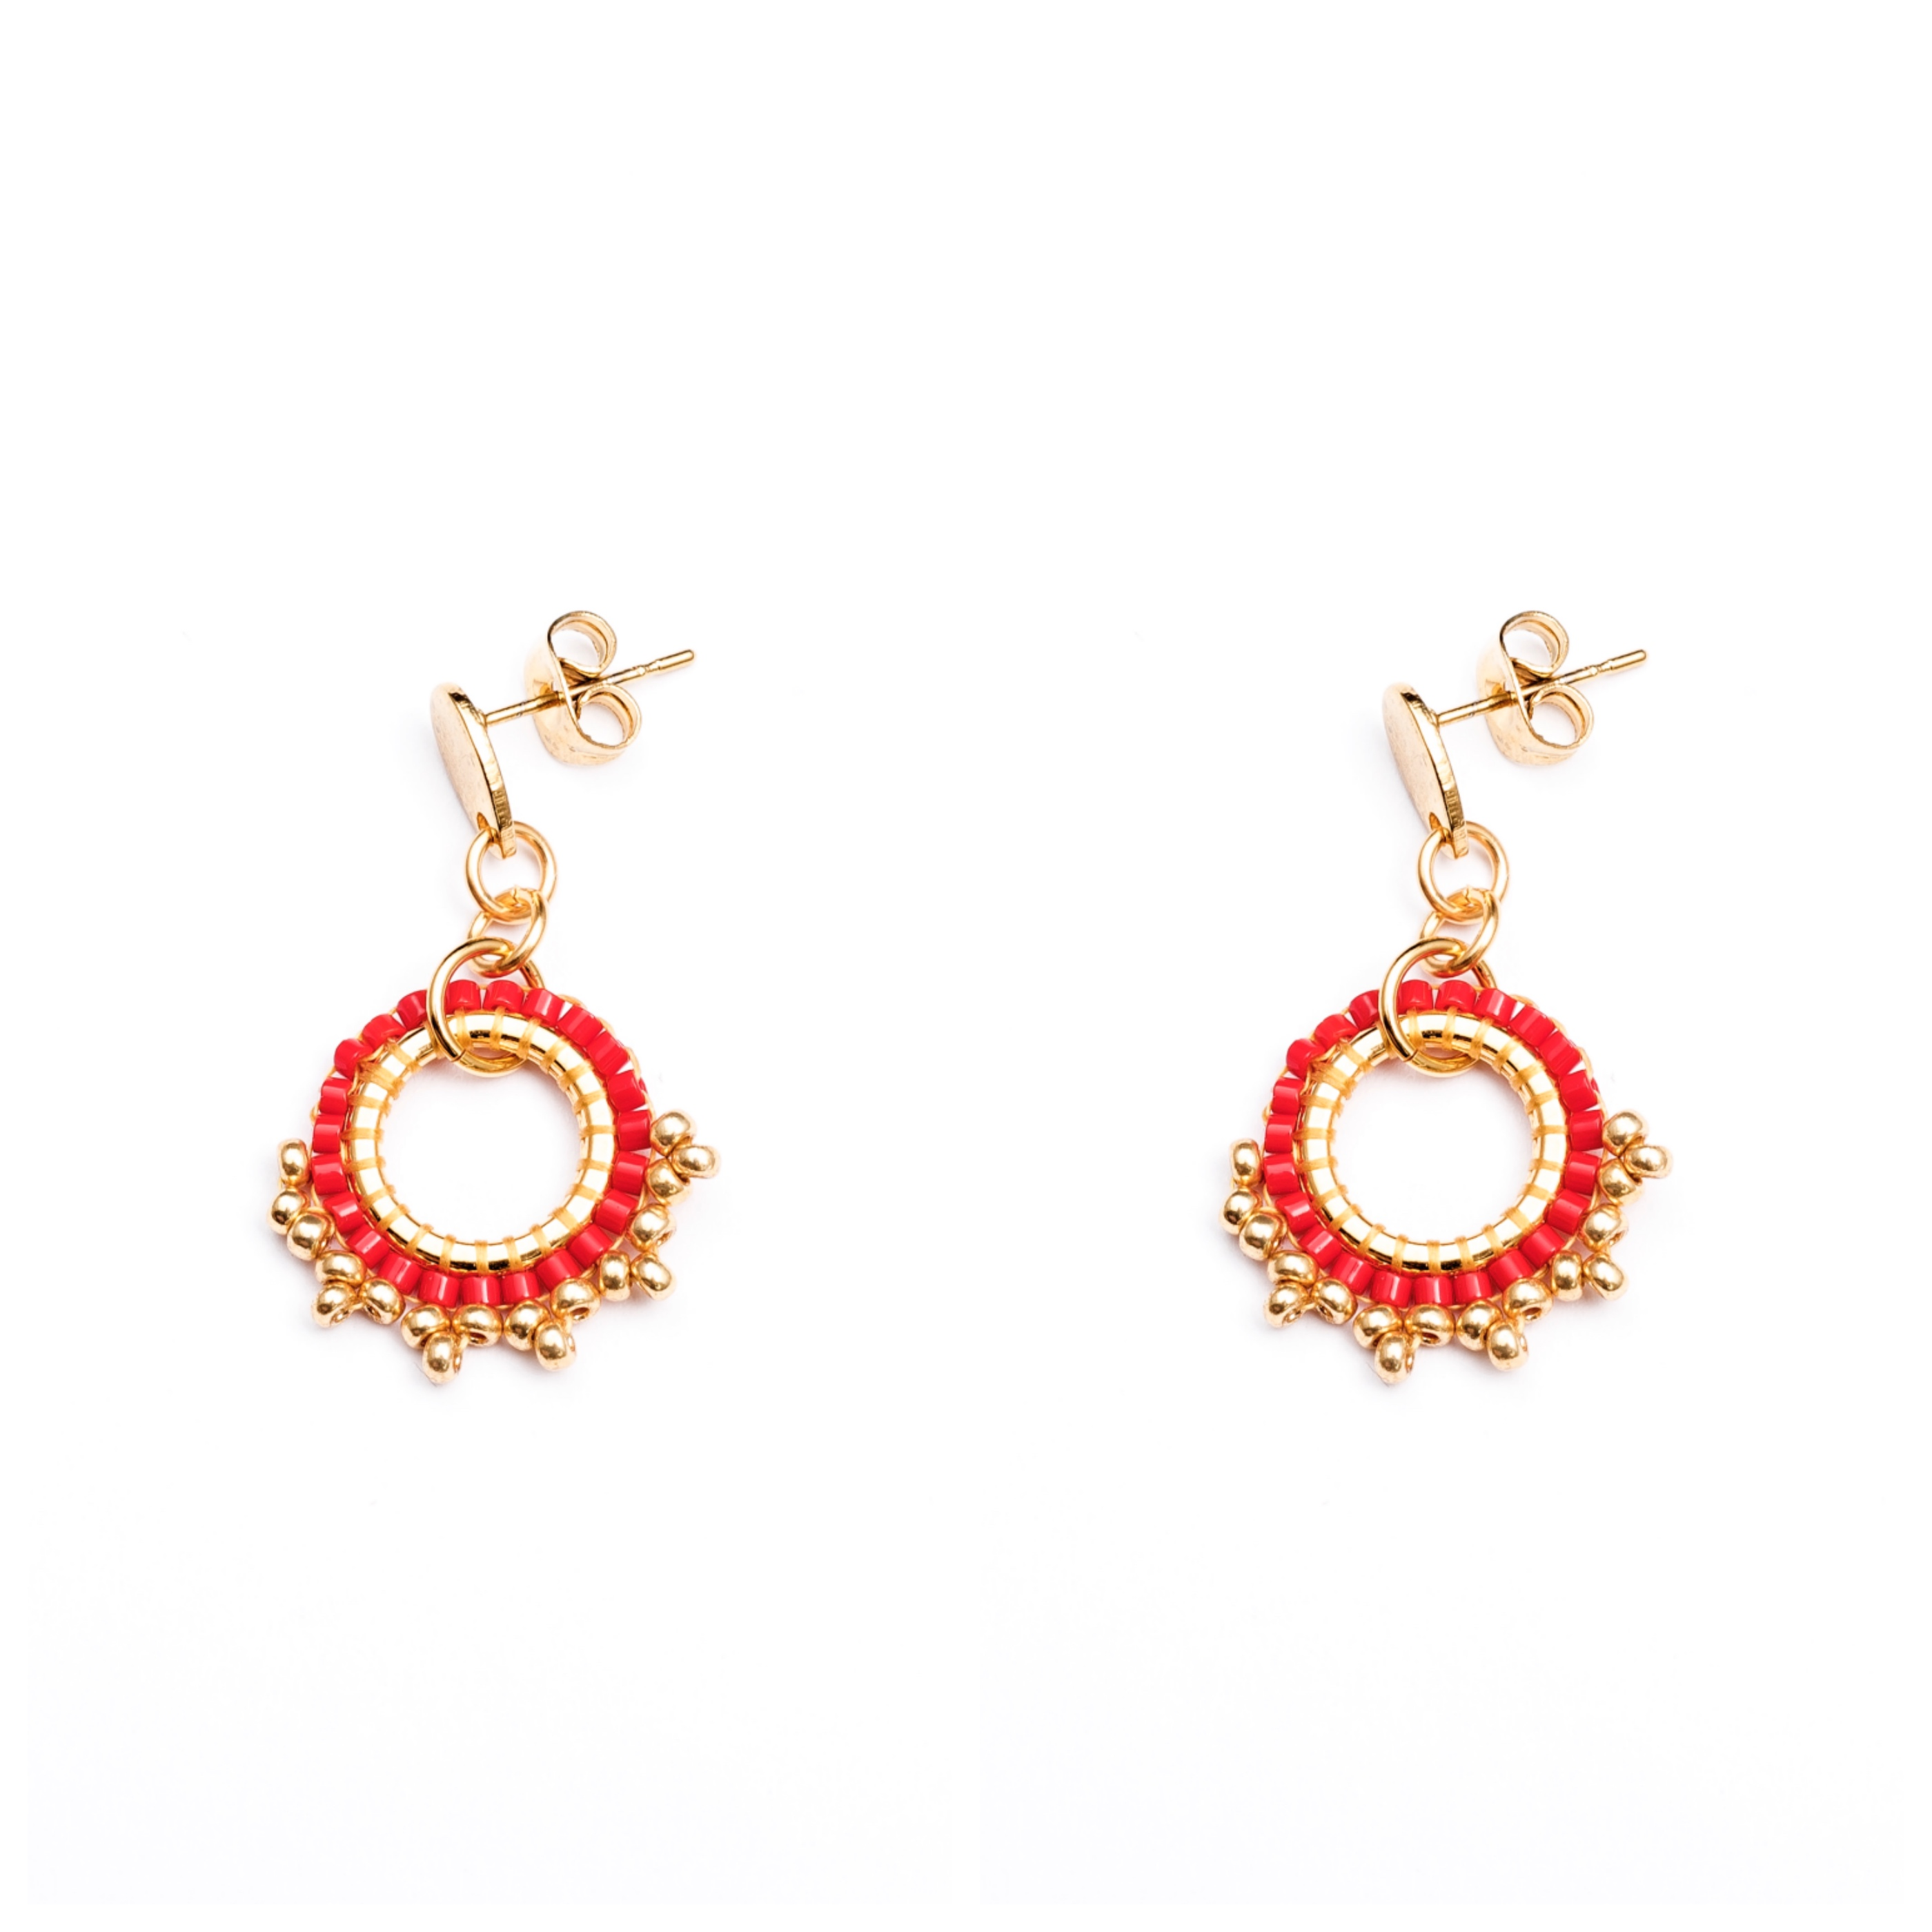 Melz - Earring Lizzy Red